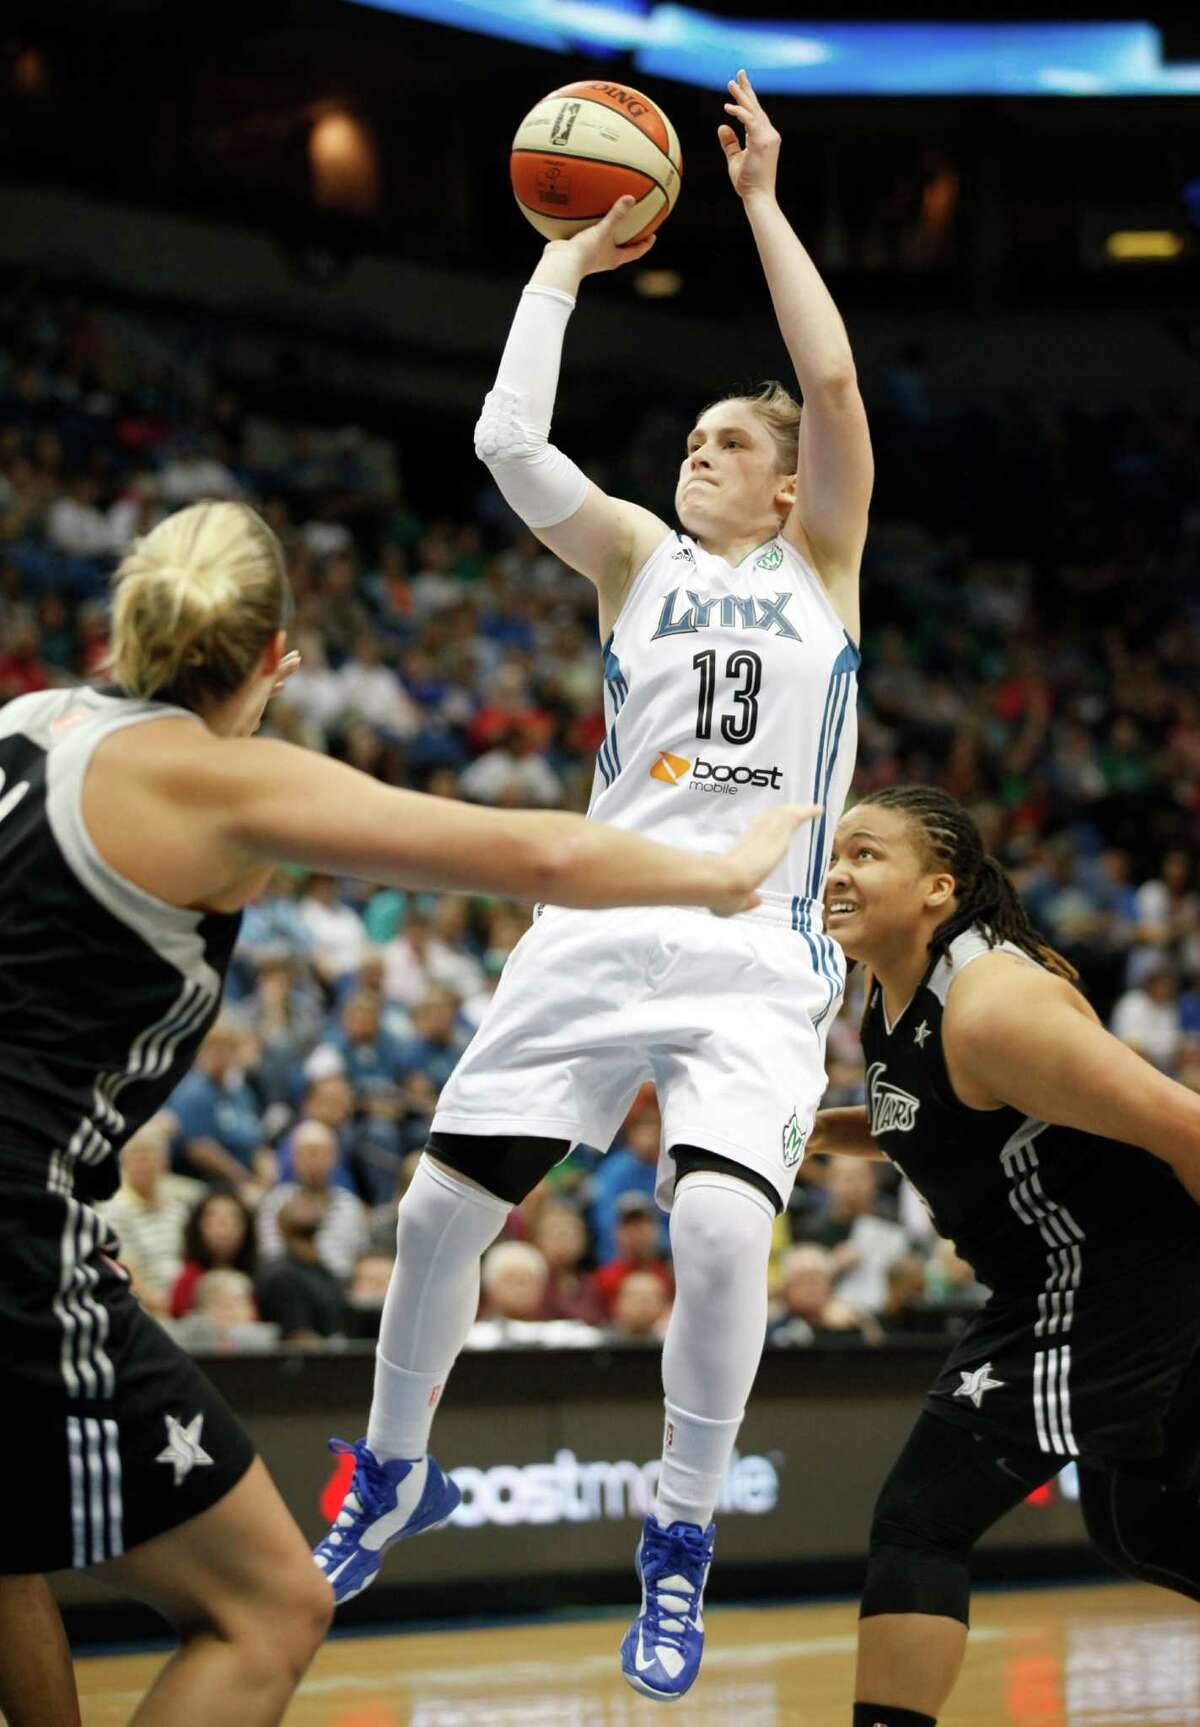 Minnesota Lynx guard Lindsay Whalen (13) goes up for a shot against San Antonio Silver Stars center Jayne Appel, left, in the first half of a WNBA basketball game, Friday, August 2, 2013, in Minneapolis. (AP Photo/Stacy Bengs)